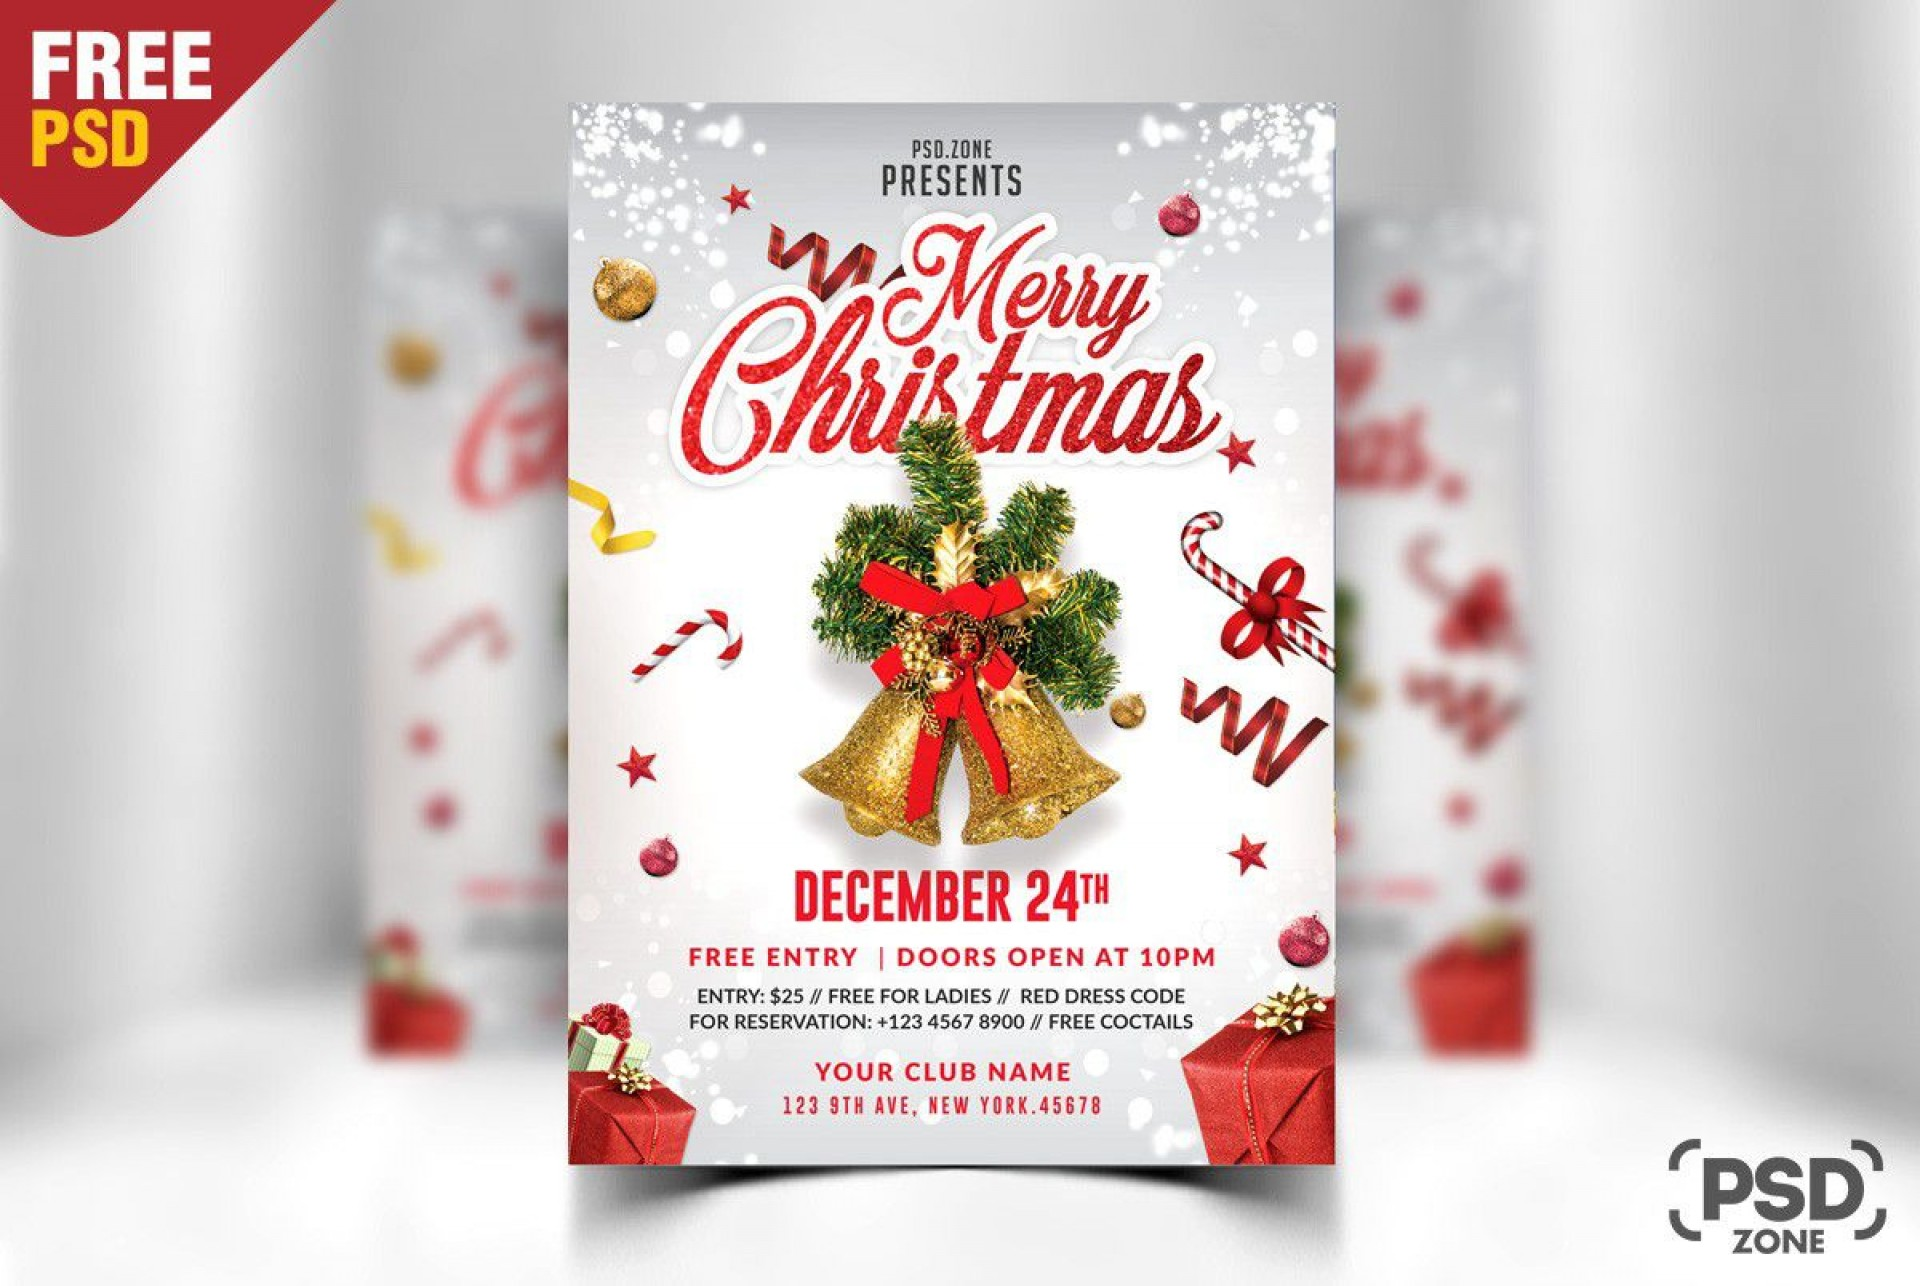 009 Impressive Free Christma Flyer Template Picture  Templates Holiday Invitation Microsoft Word Psd1920